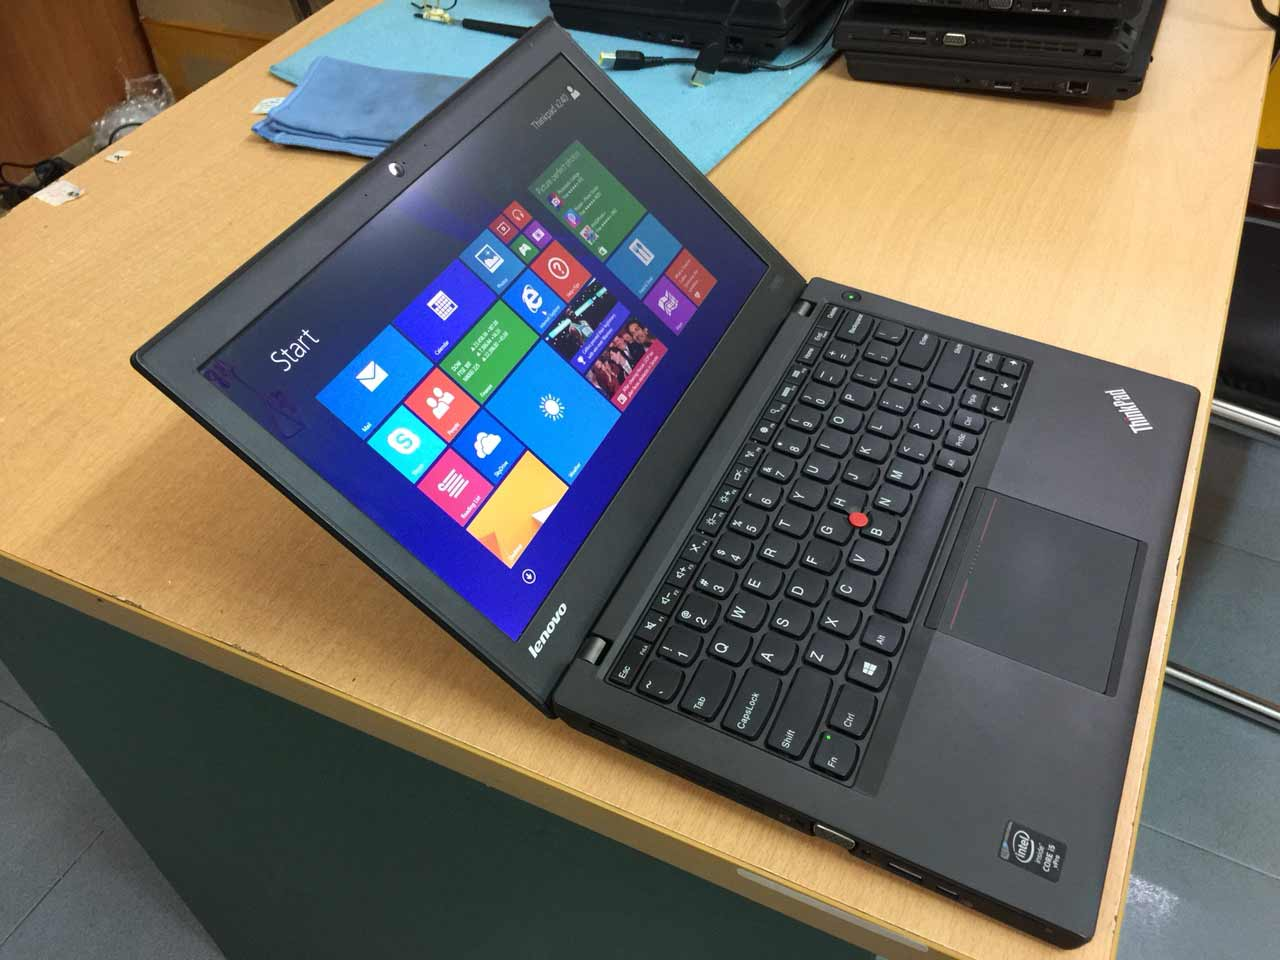 LENOVO THINKPAD X240 I5 4200U 8GB 240GB